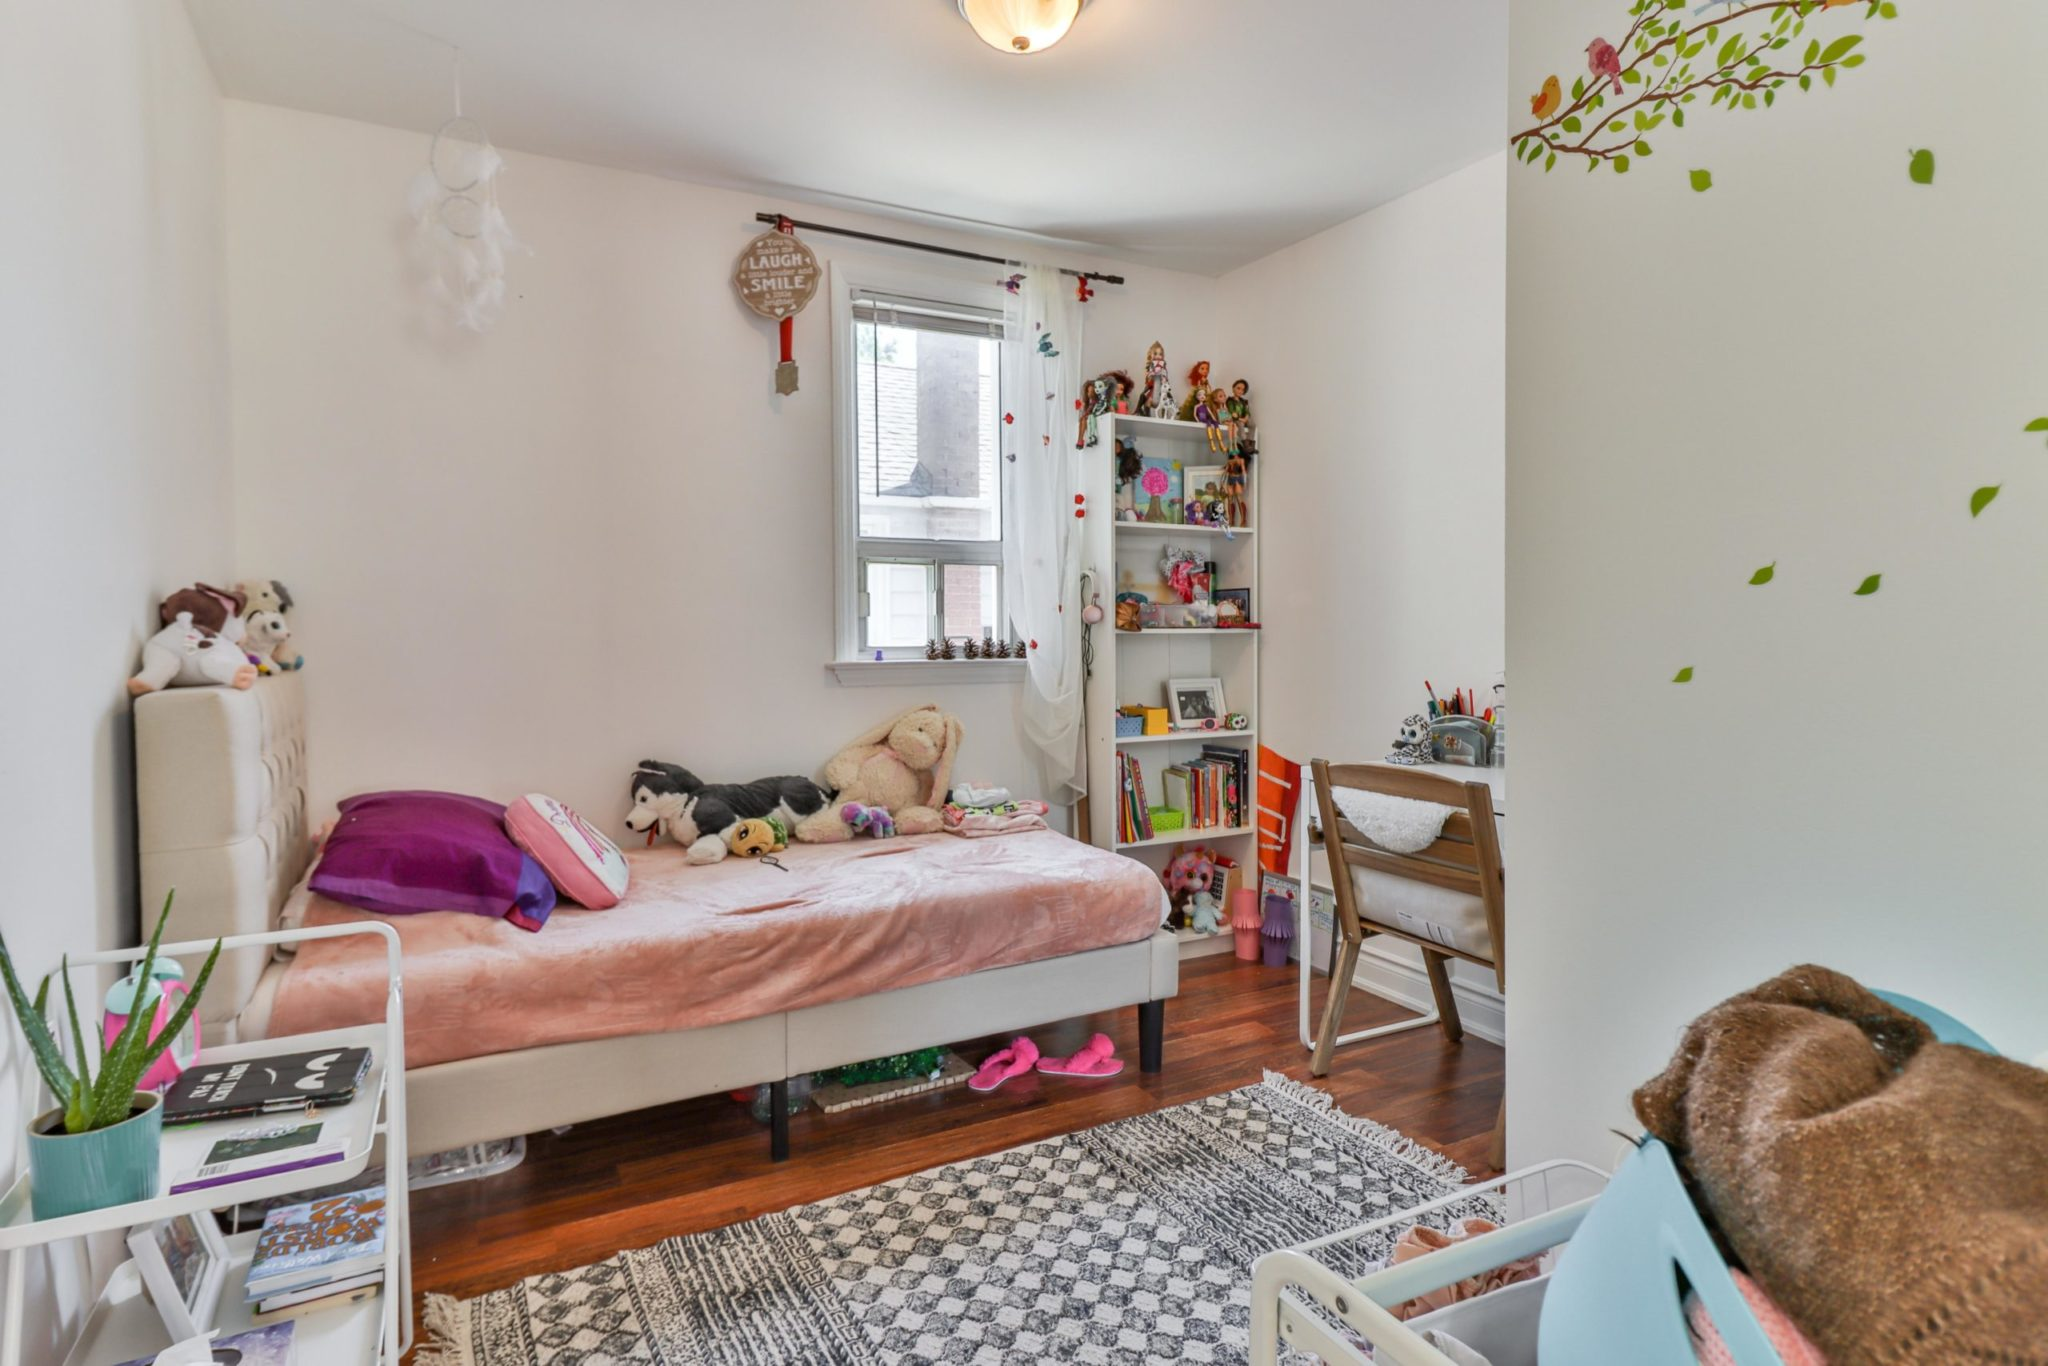 Girl's bedroom with pink walls, bookcase with dolls and stuffed animals on bed.